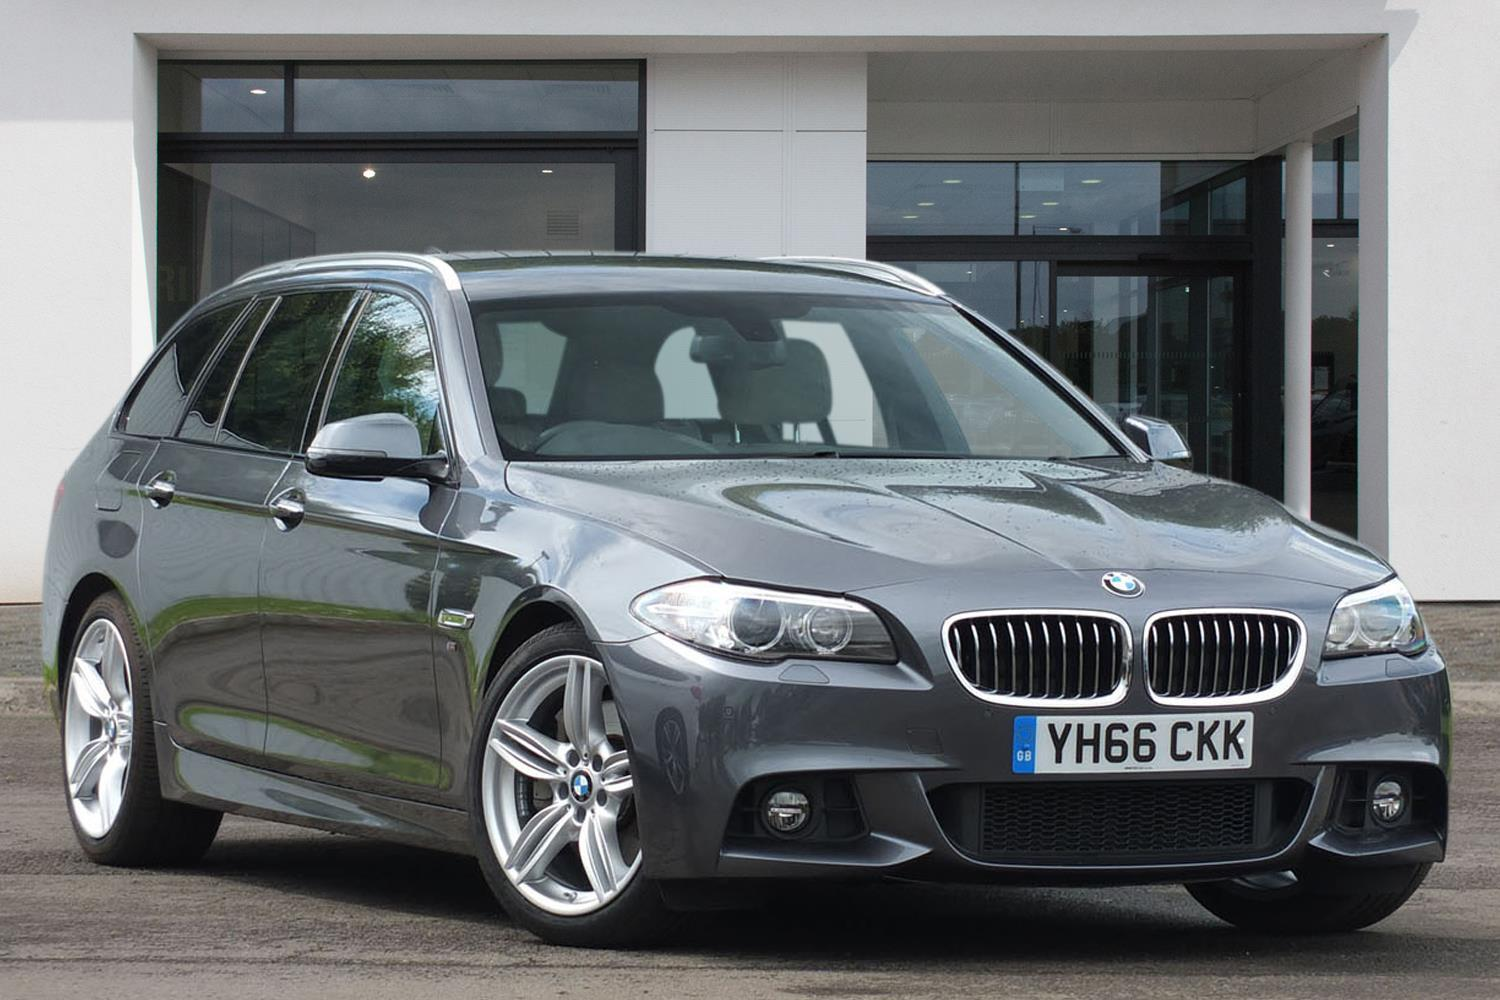 BMW 5 Series Touring YH66CKK - Image 3